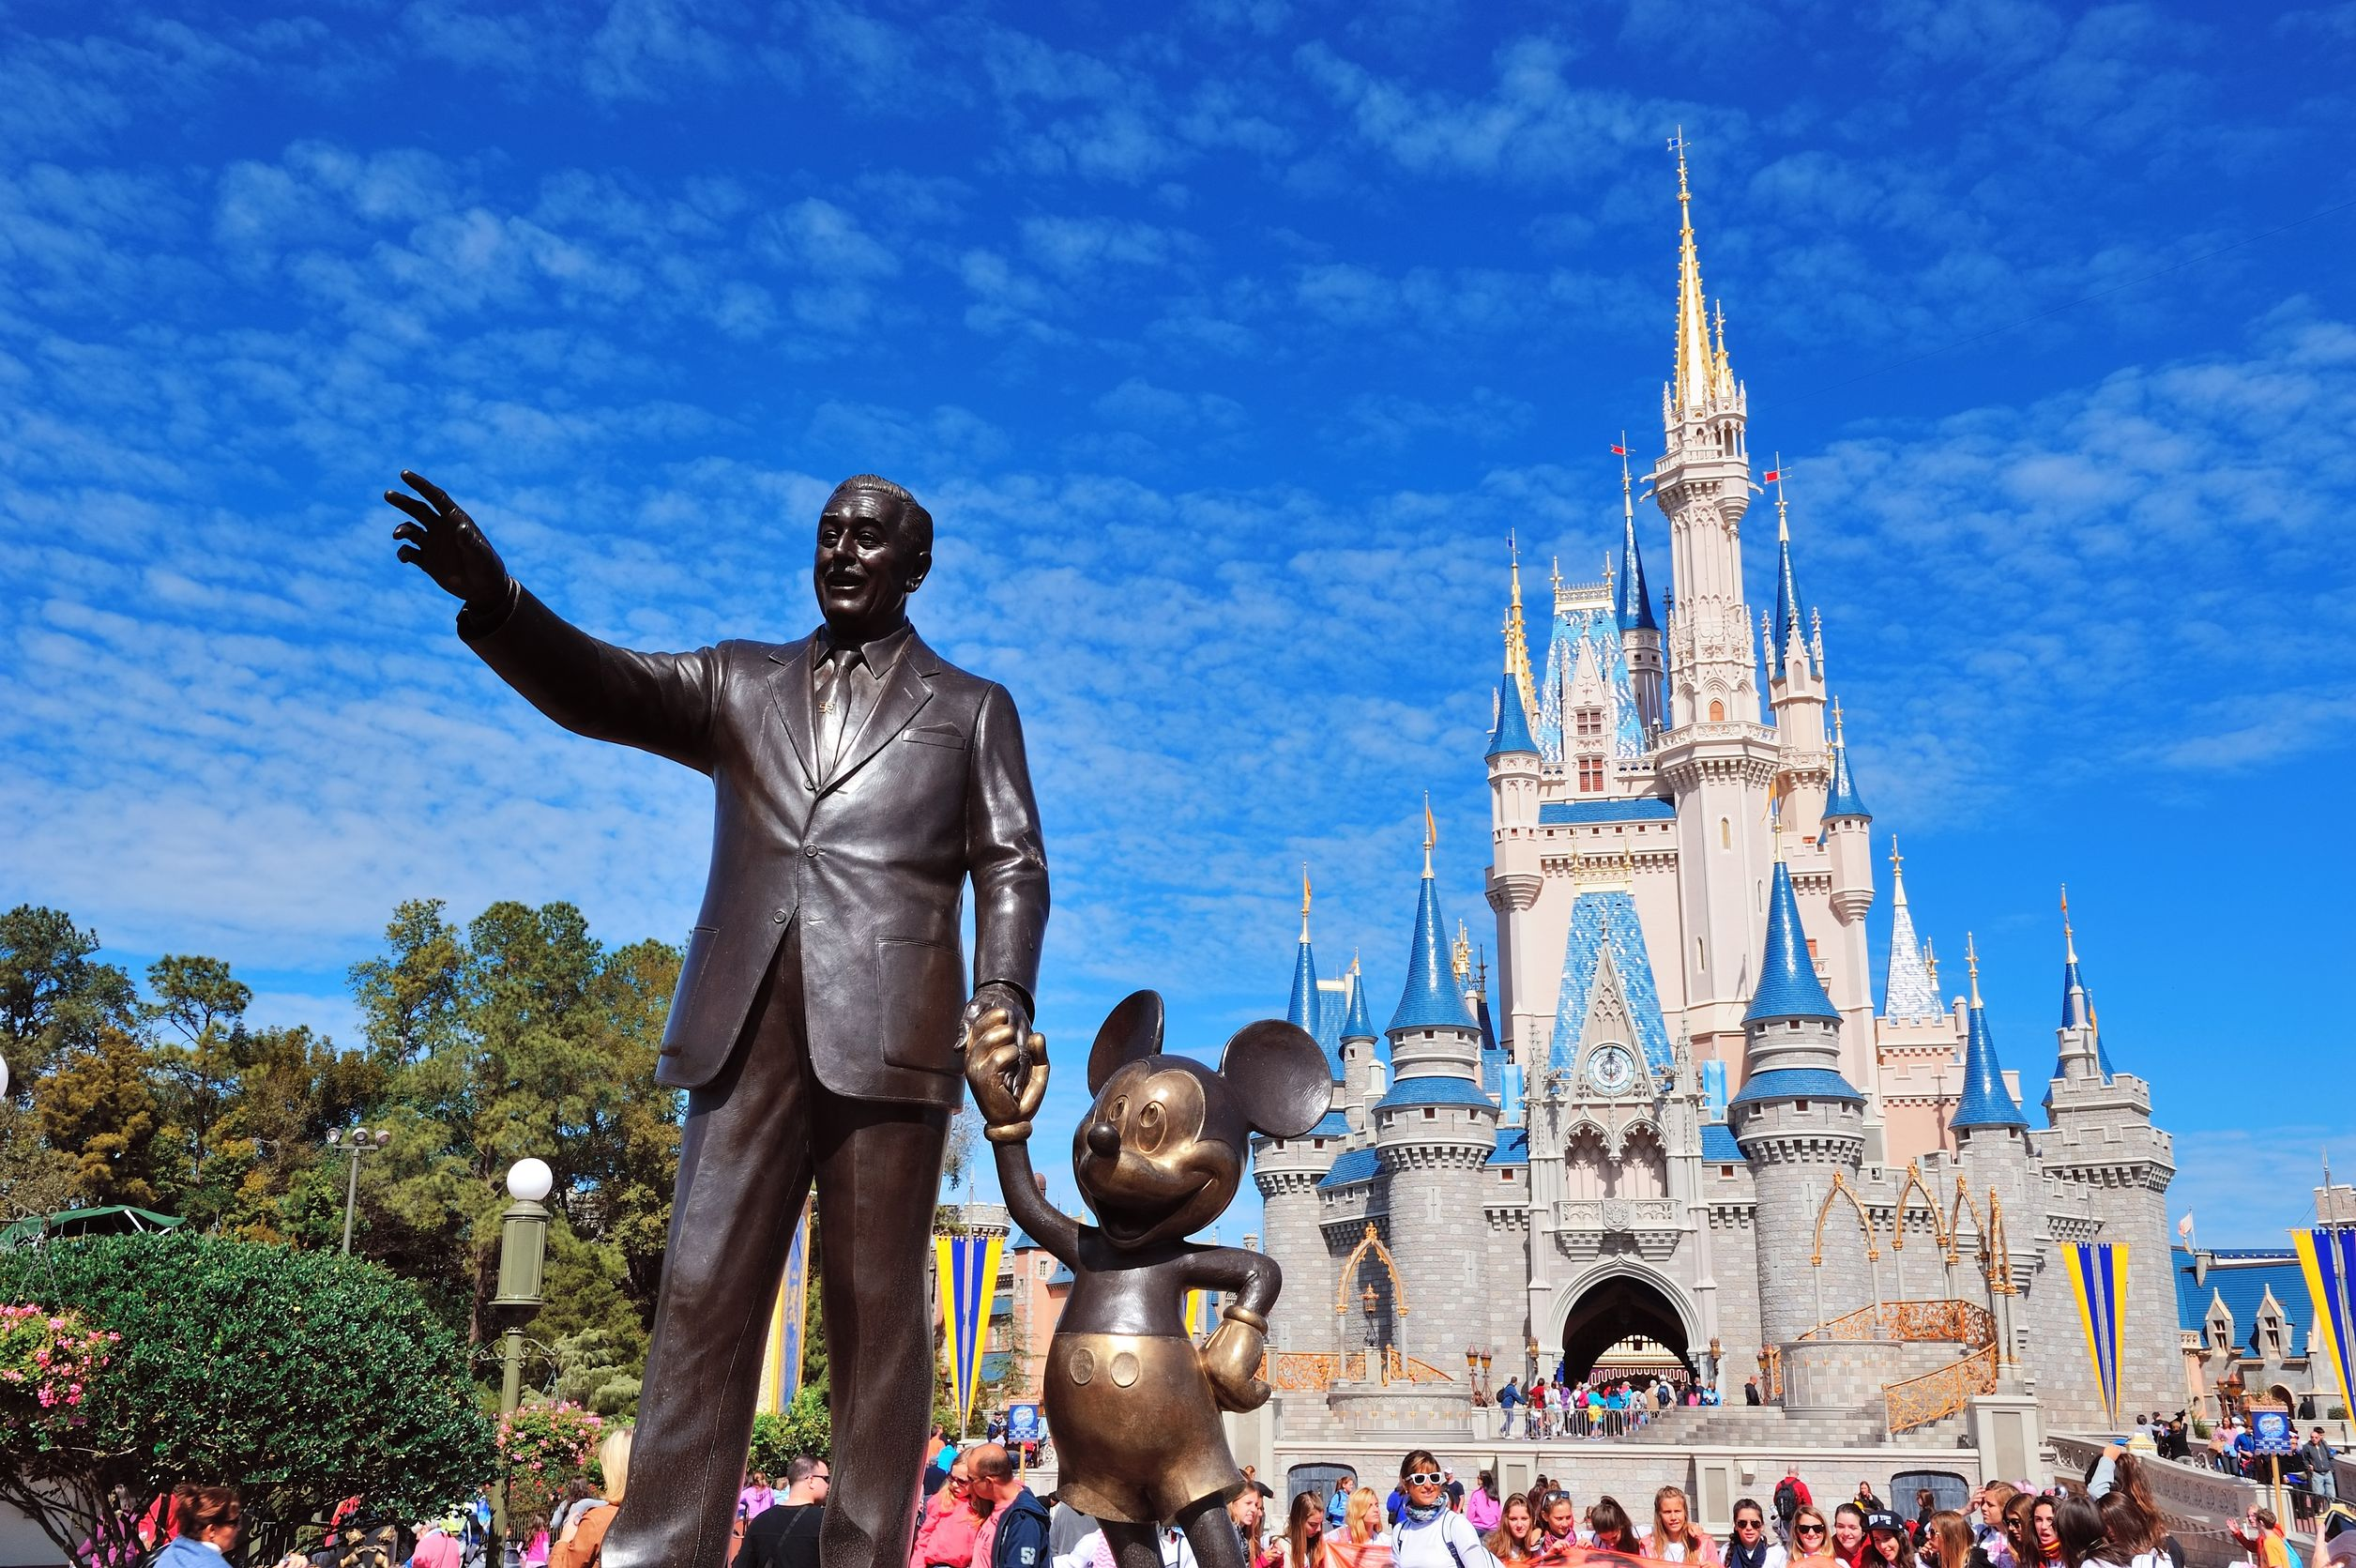 Disney increases security as a result of Orlando shooting